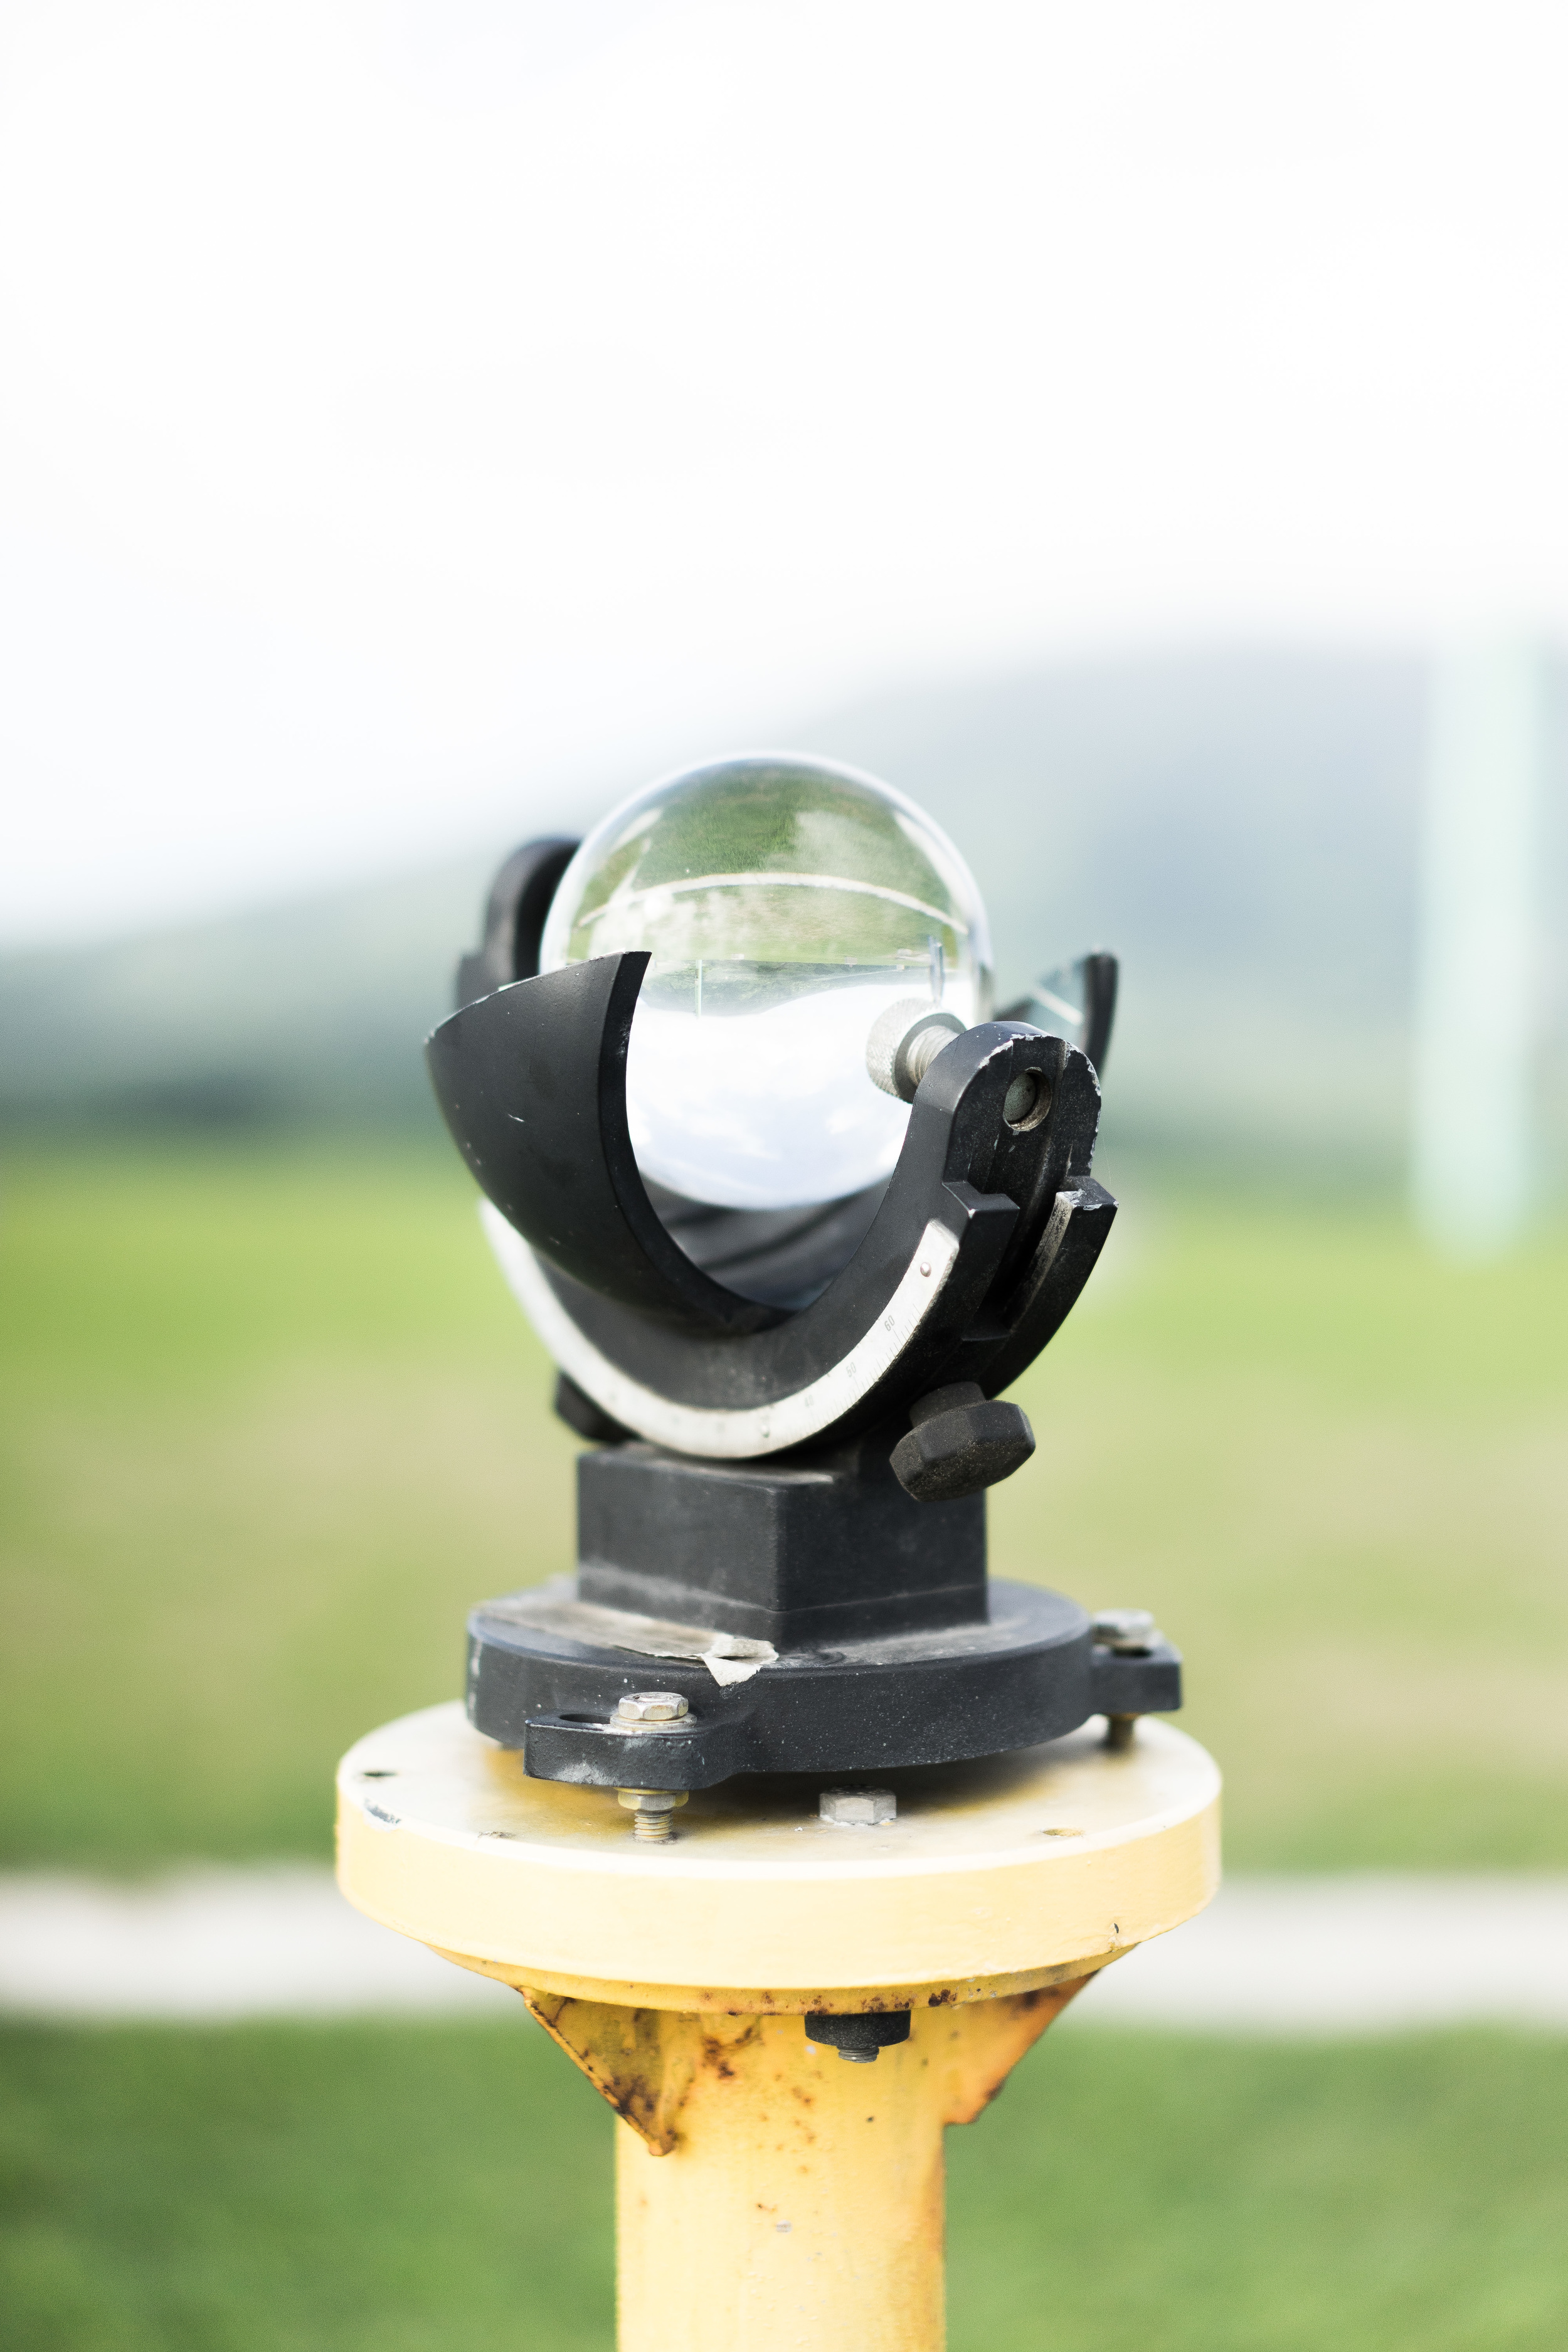 A device used to measure how hot sunlight is!